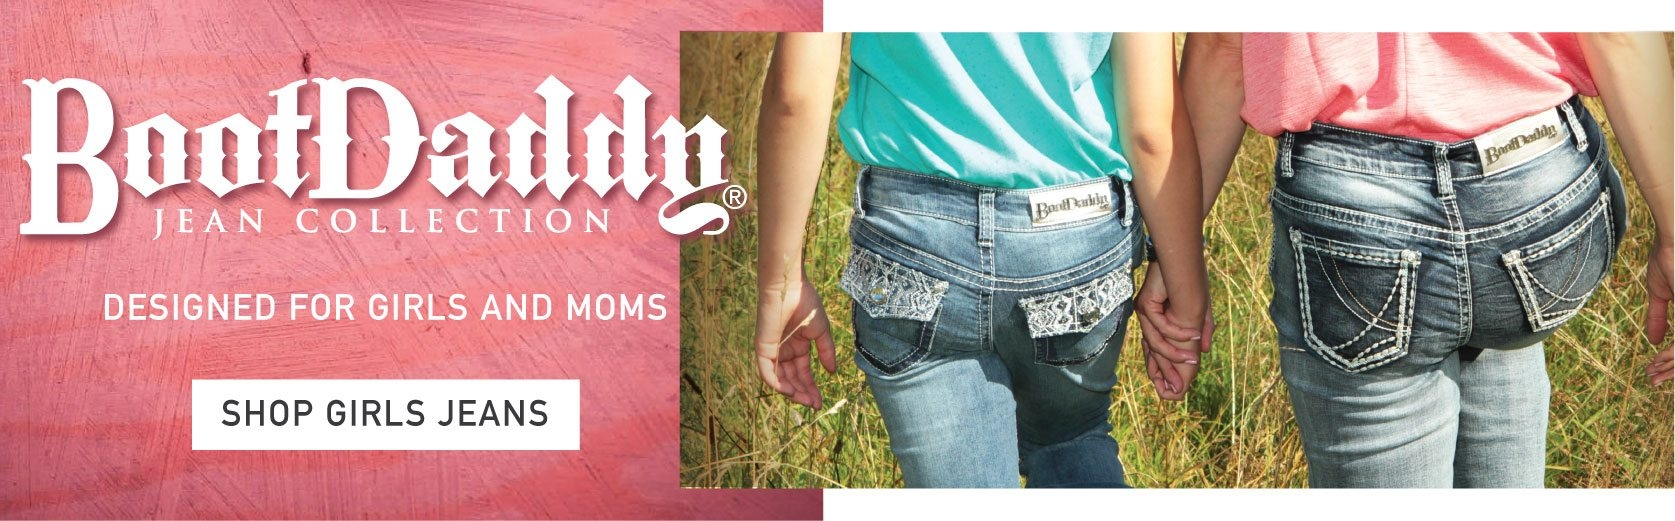 BootDaddy Girl Jeans